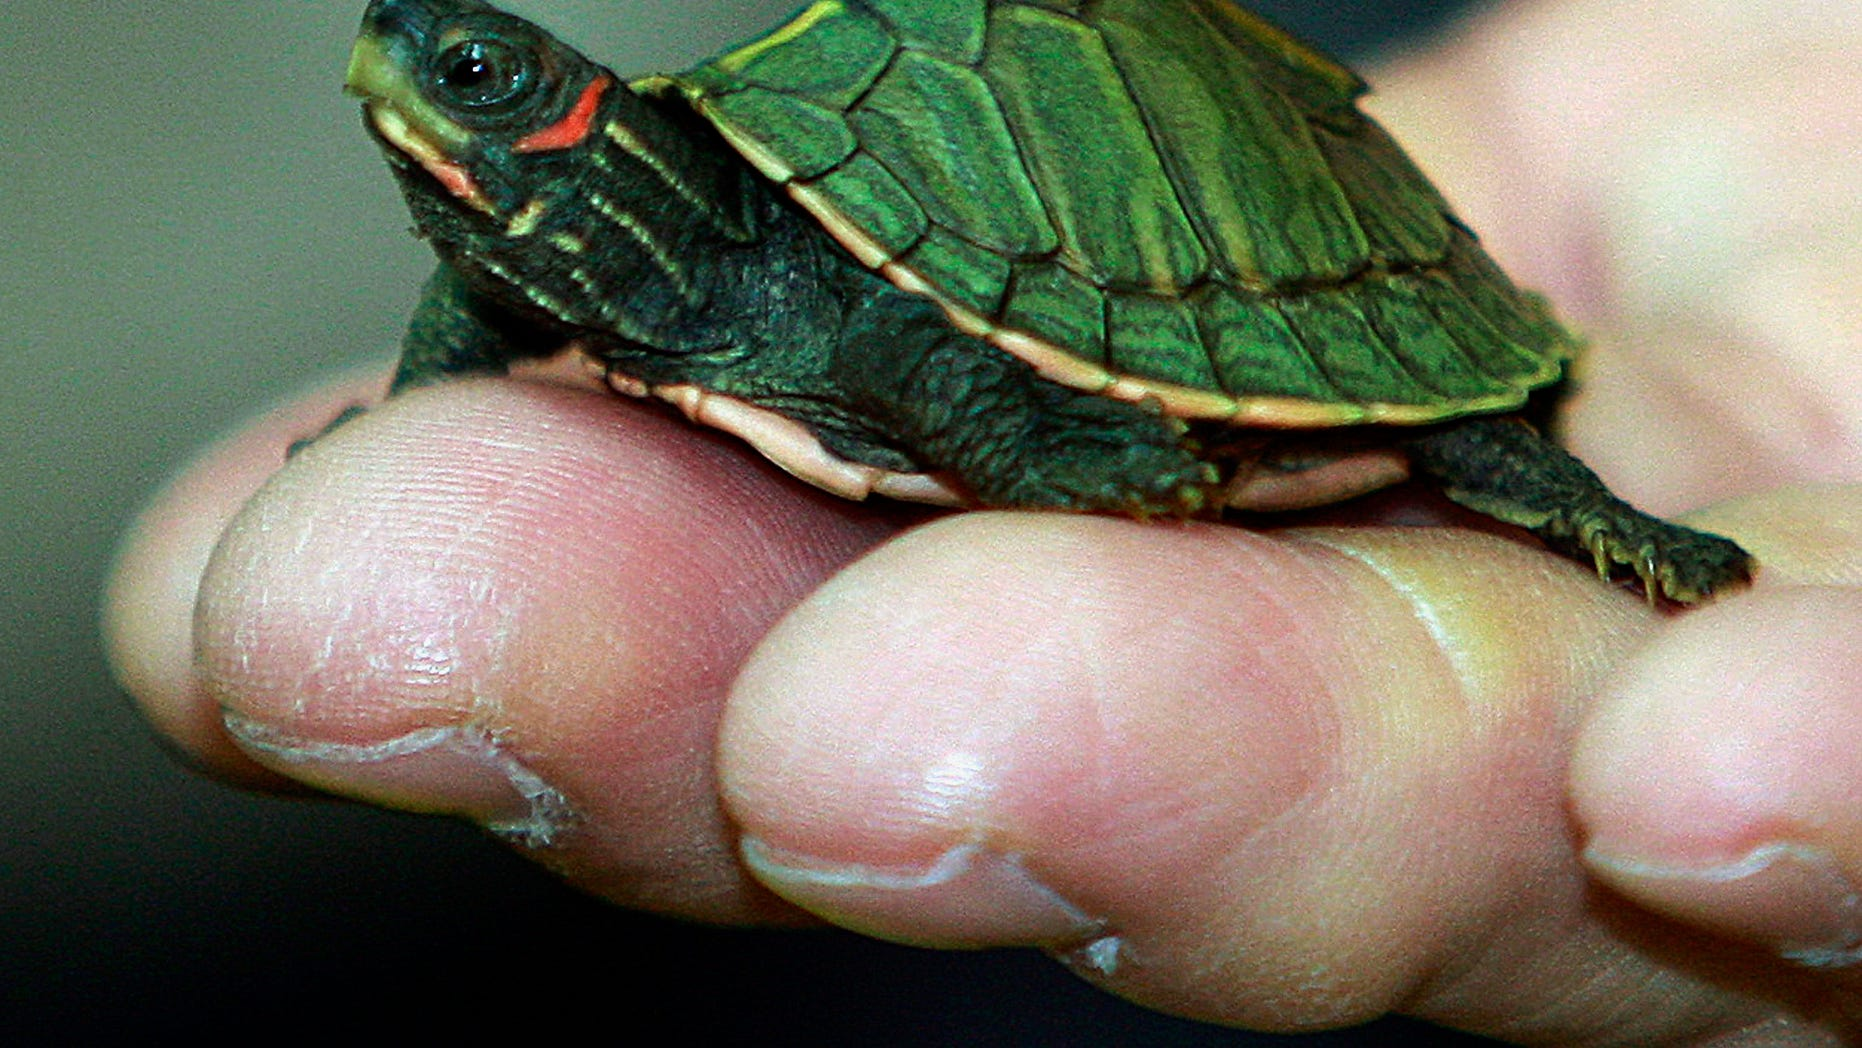 In this photo taken June 2, 2011, a young Indian roofed turtle crawls on the fingers of a custom officer during a news conference on wildlife seized in Bangkok, Thailand. Officials at Thailand's gateway airport proudly tick off the illegally trafficked wildlife they have seized over the past two years. But Thai and foreign law enforcement officers tell another story: officials working-hand-in-hand with the traffickers ensure that other shipments through Suvarnabhumi International Airport are whisked off before they even reach customs inspection. (AP Photo/Apichart Weerawong)